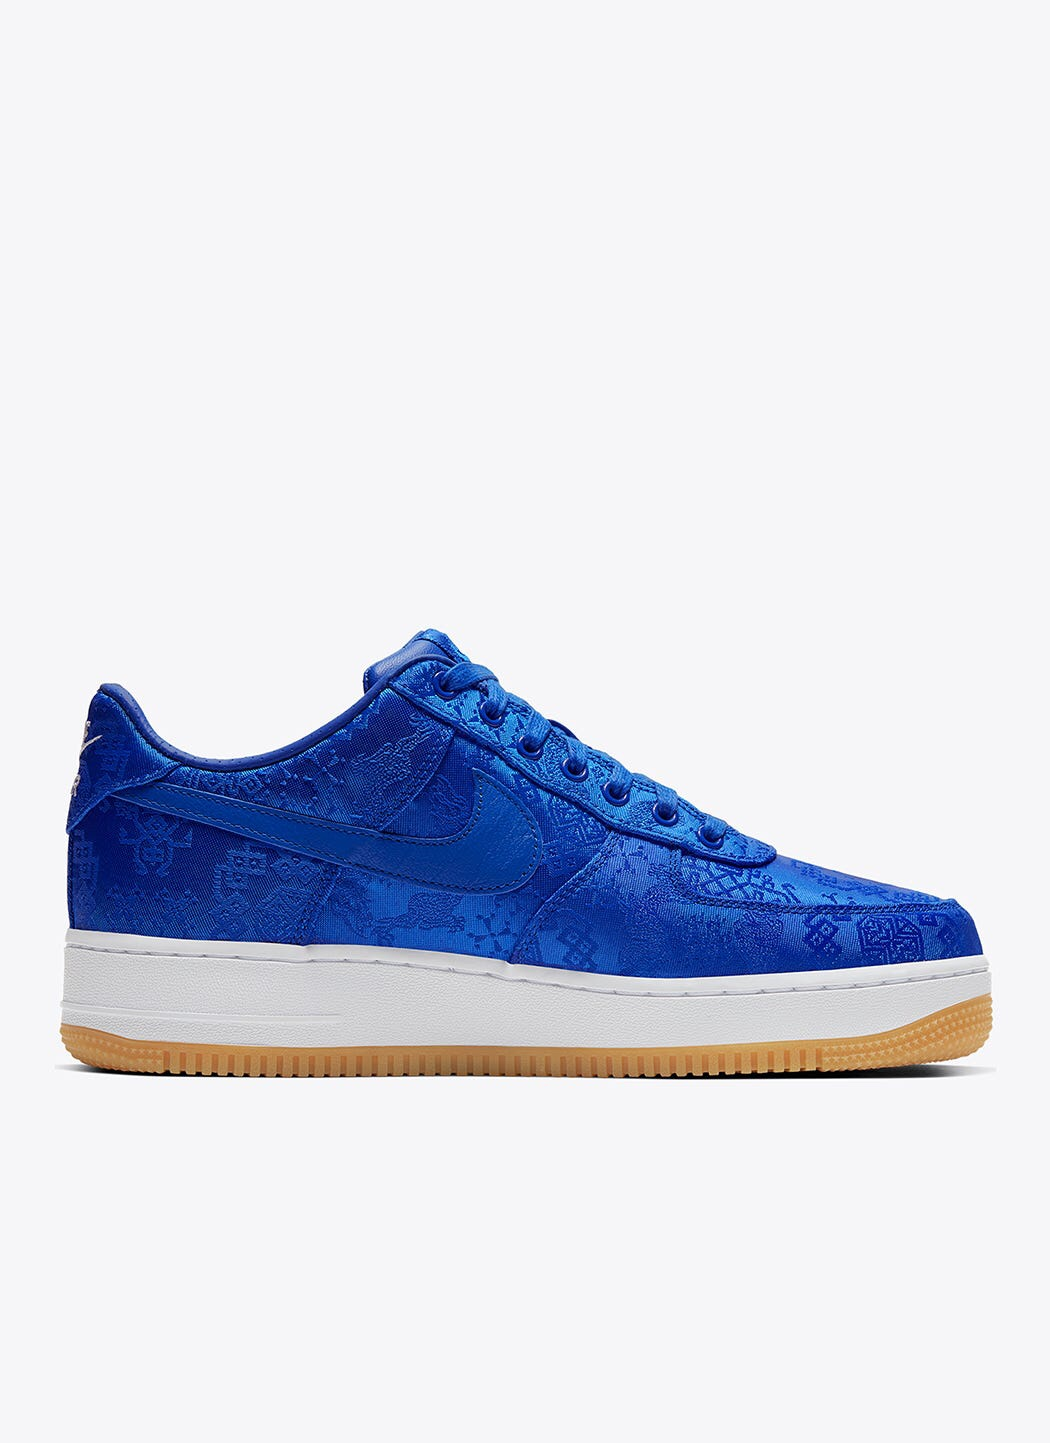 "【NIKE】11月11日発売 CLOT × NIKE AIR FORCE 1 PREMIUM ""BLUE SILK"""